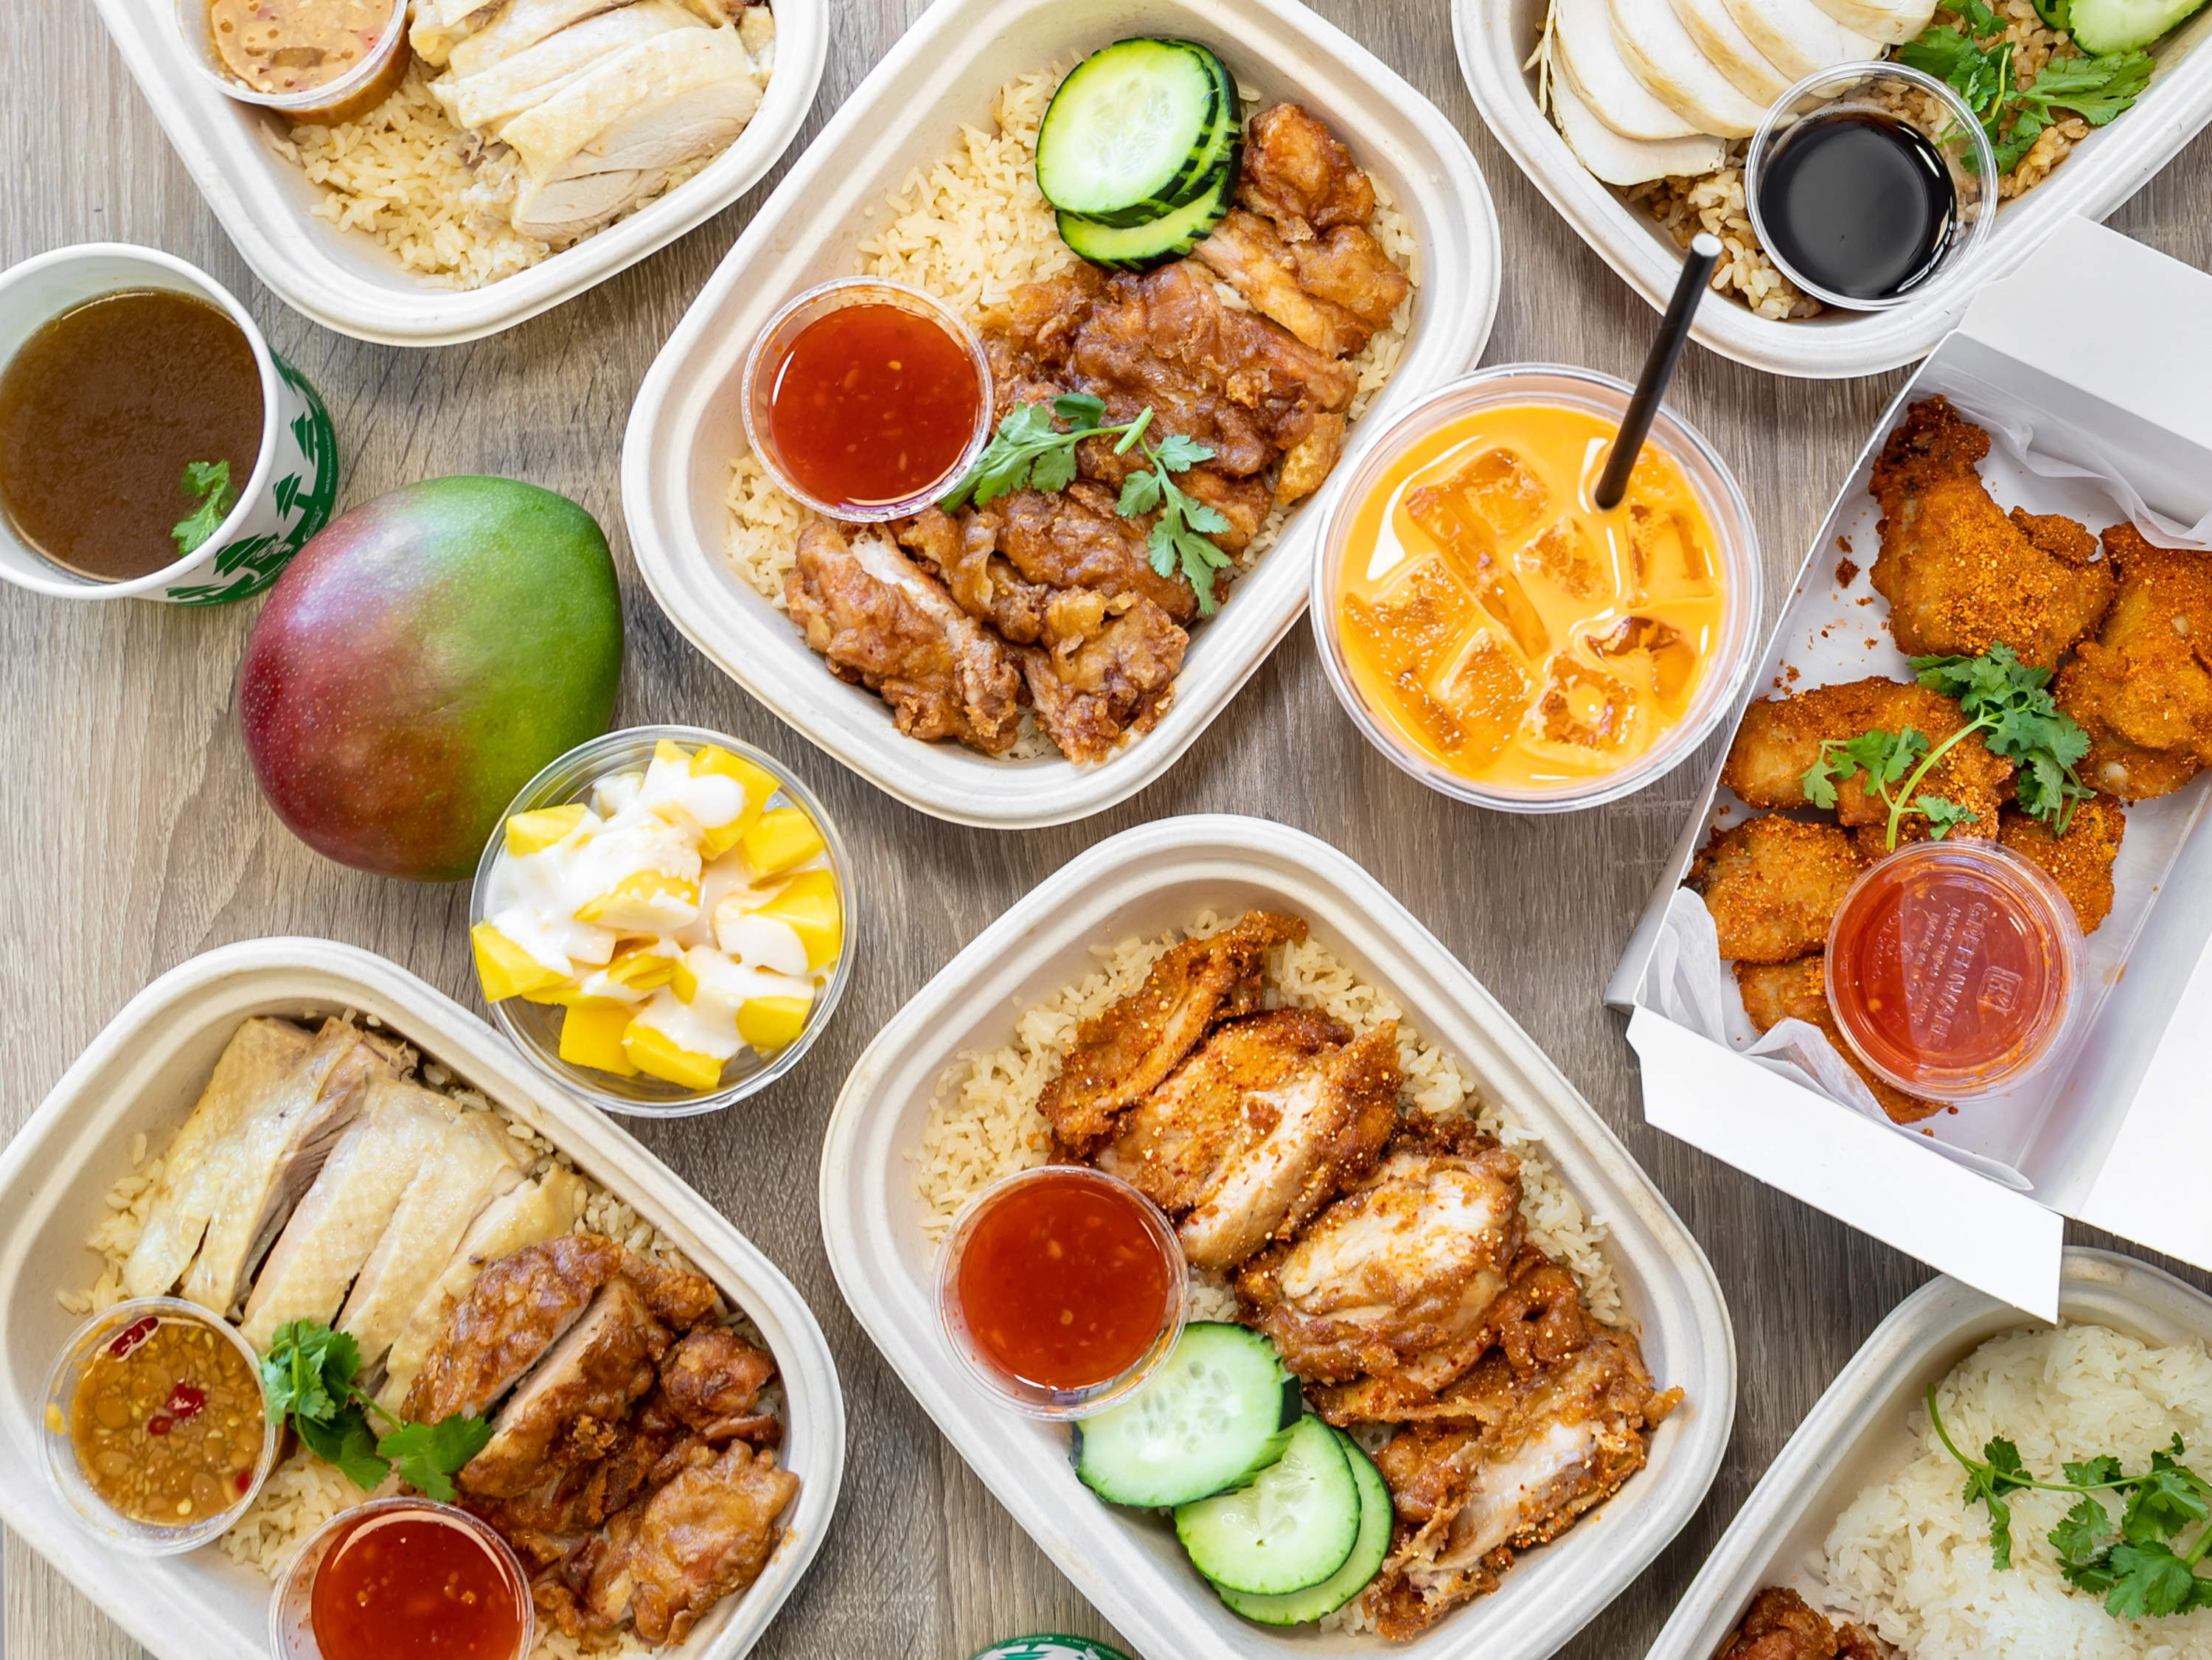 Meals from Hot Chicken Rice. (Courtesy)